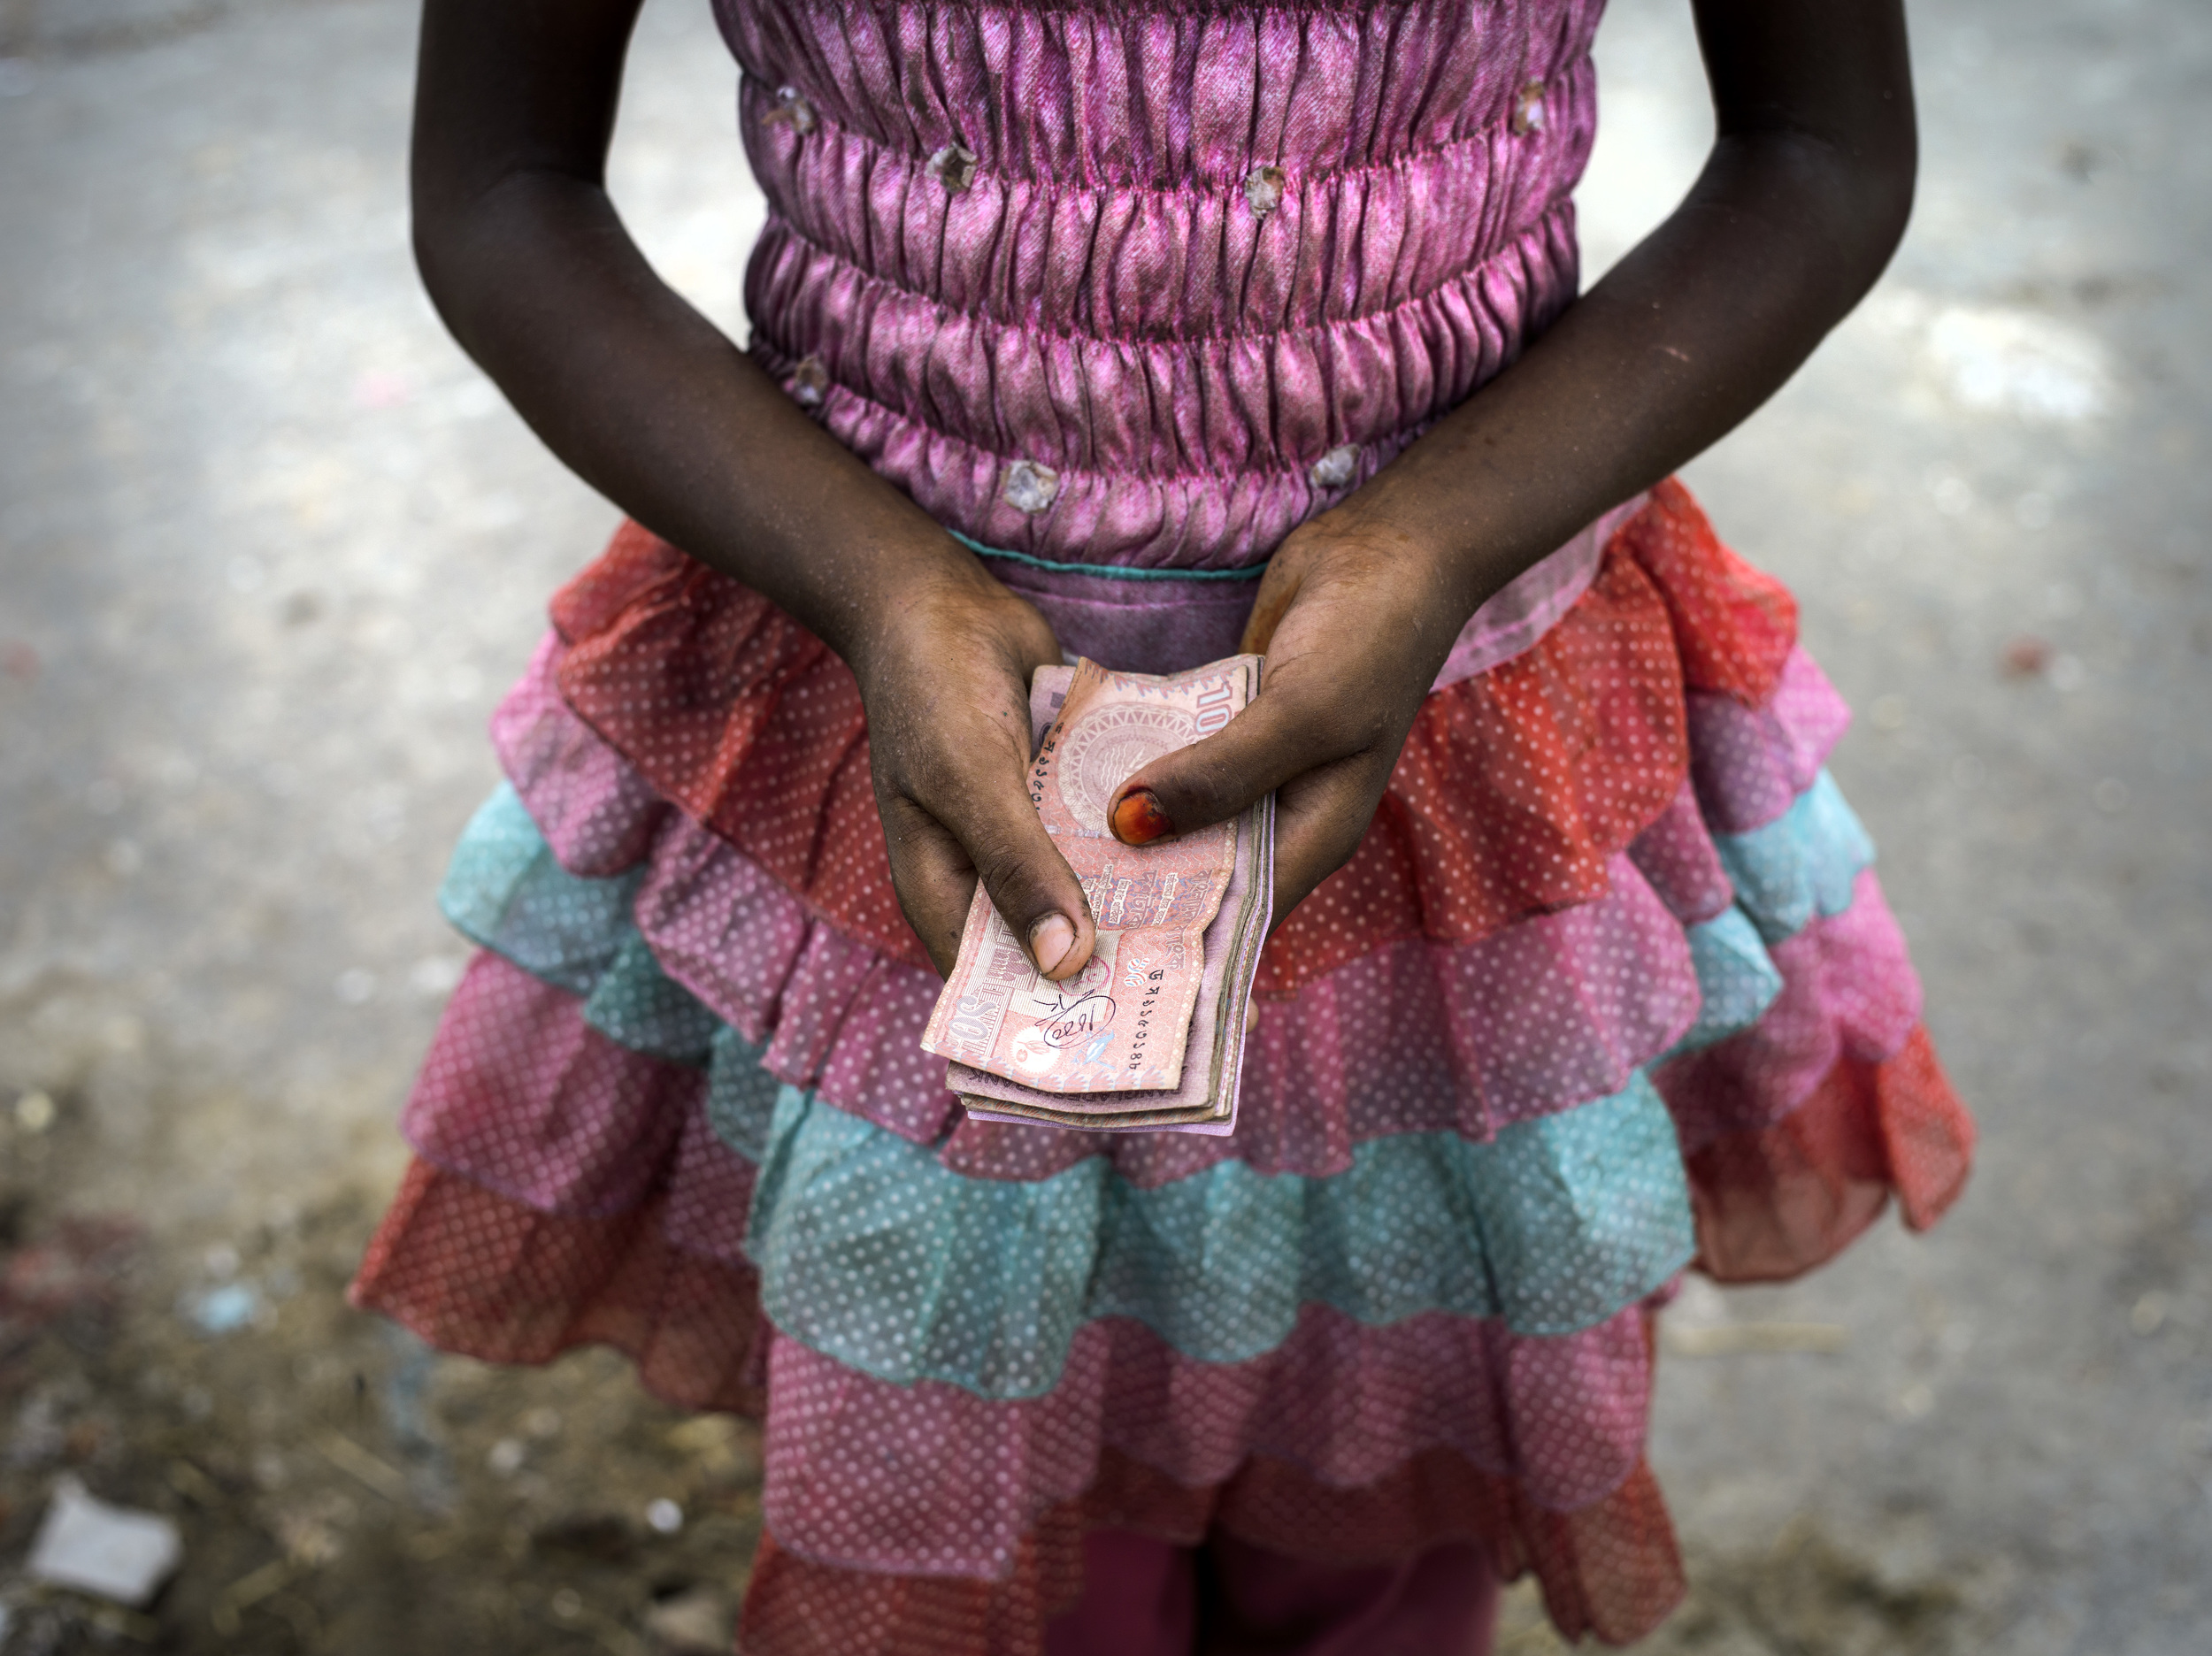 A girl shows the money her family made that day at Aminbazar Sanitary Landfill, Dhaka.